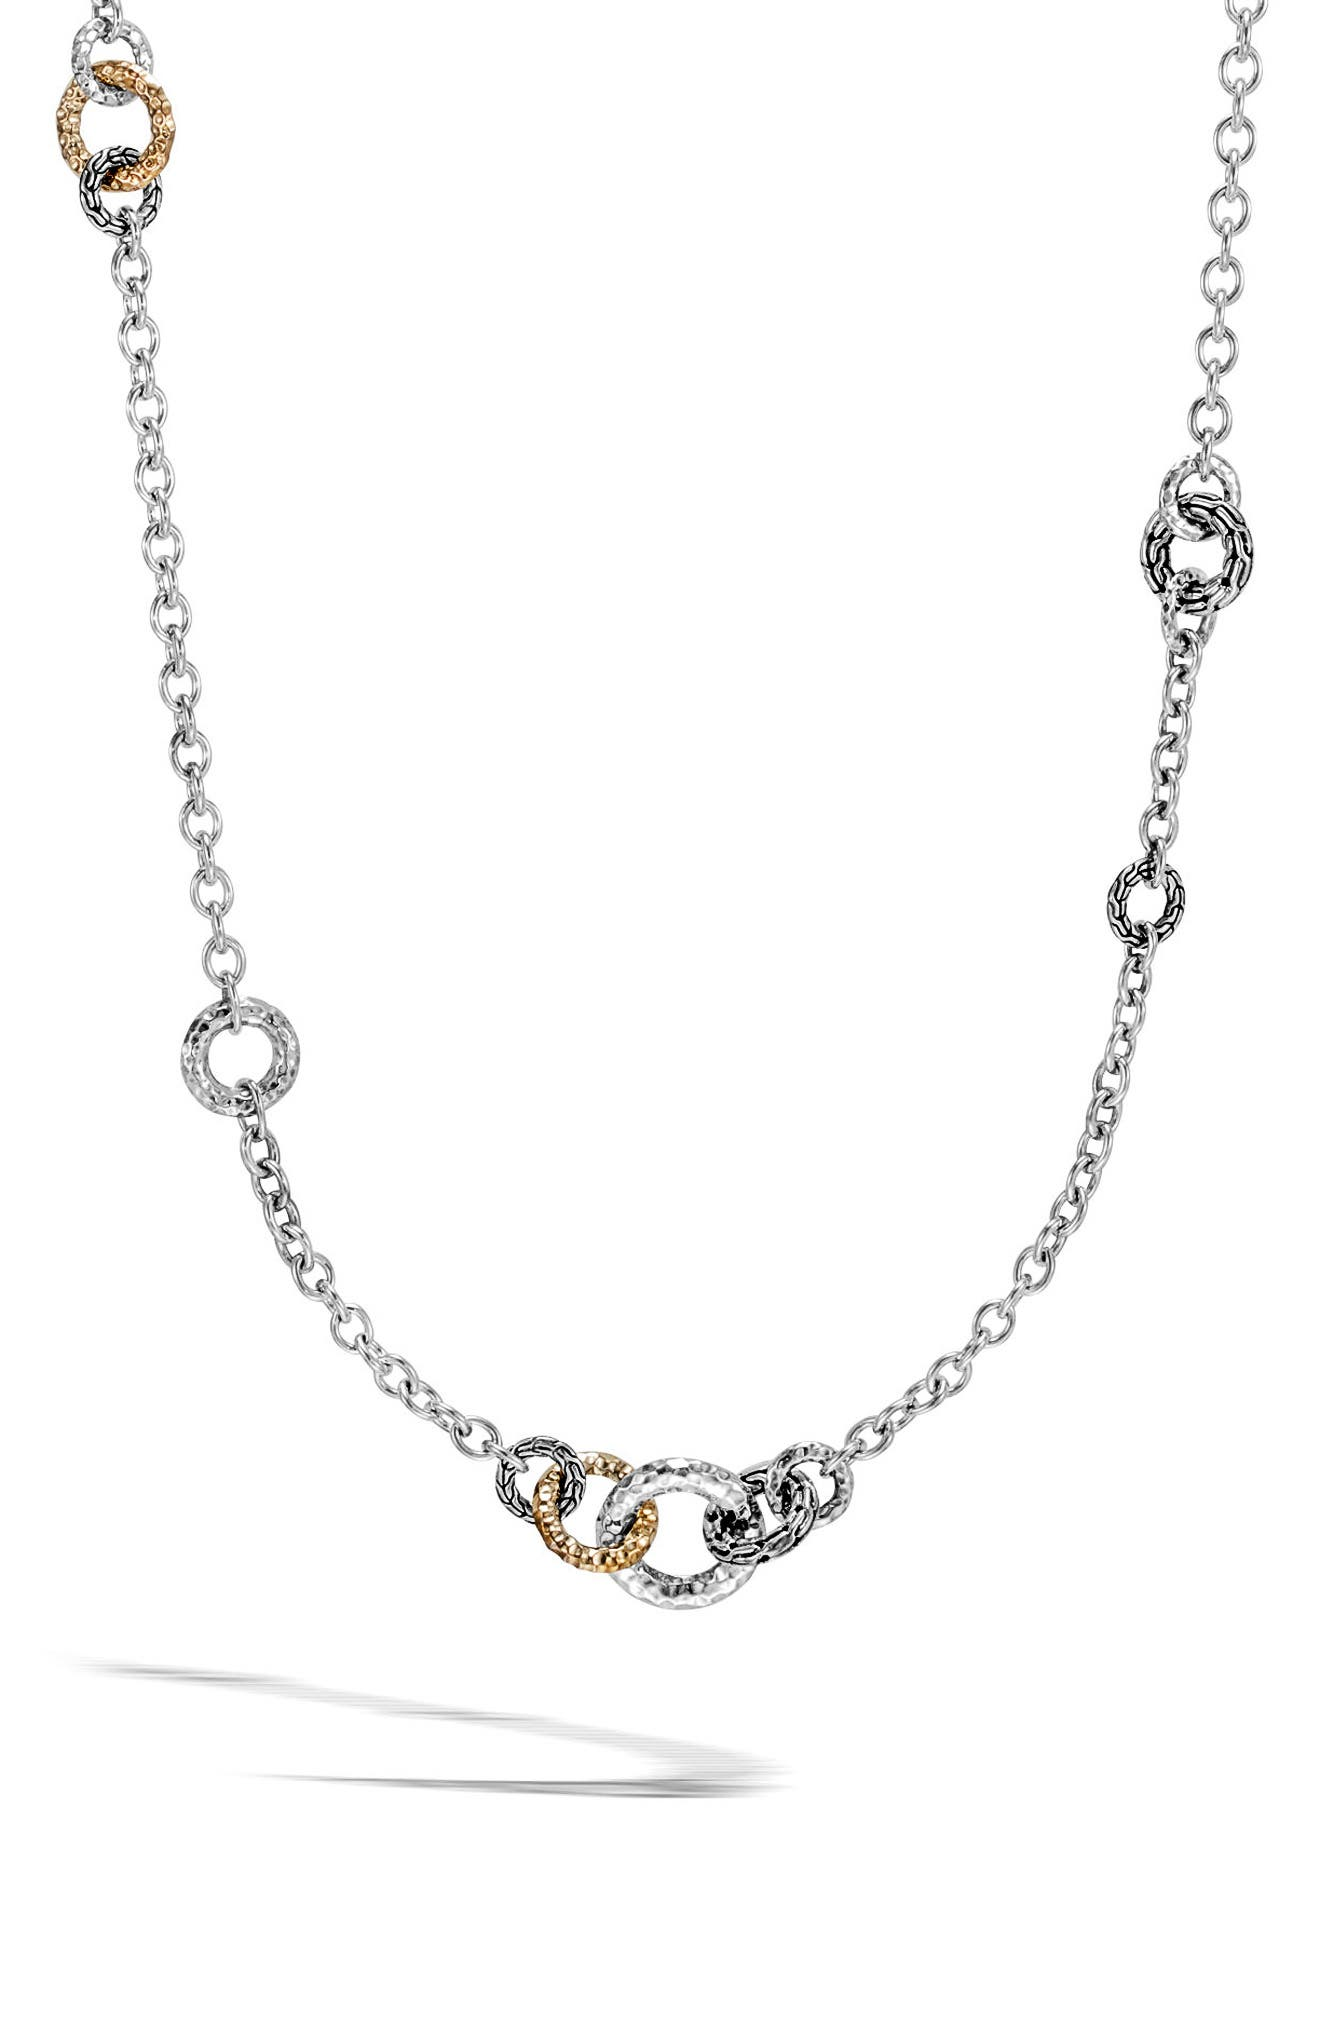 Alternate Image 1 Selected - John Hardy Classic Chain Hammered Link Sautoir Necklace